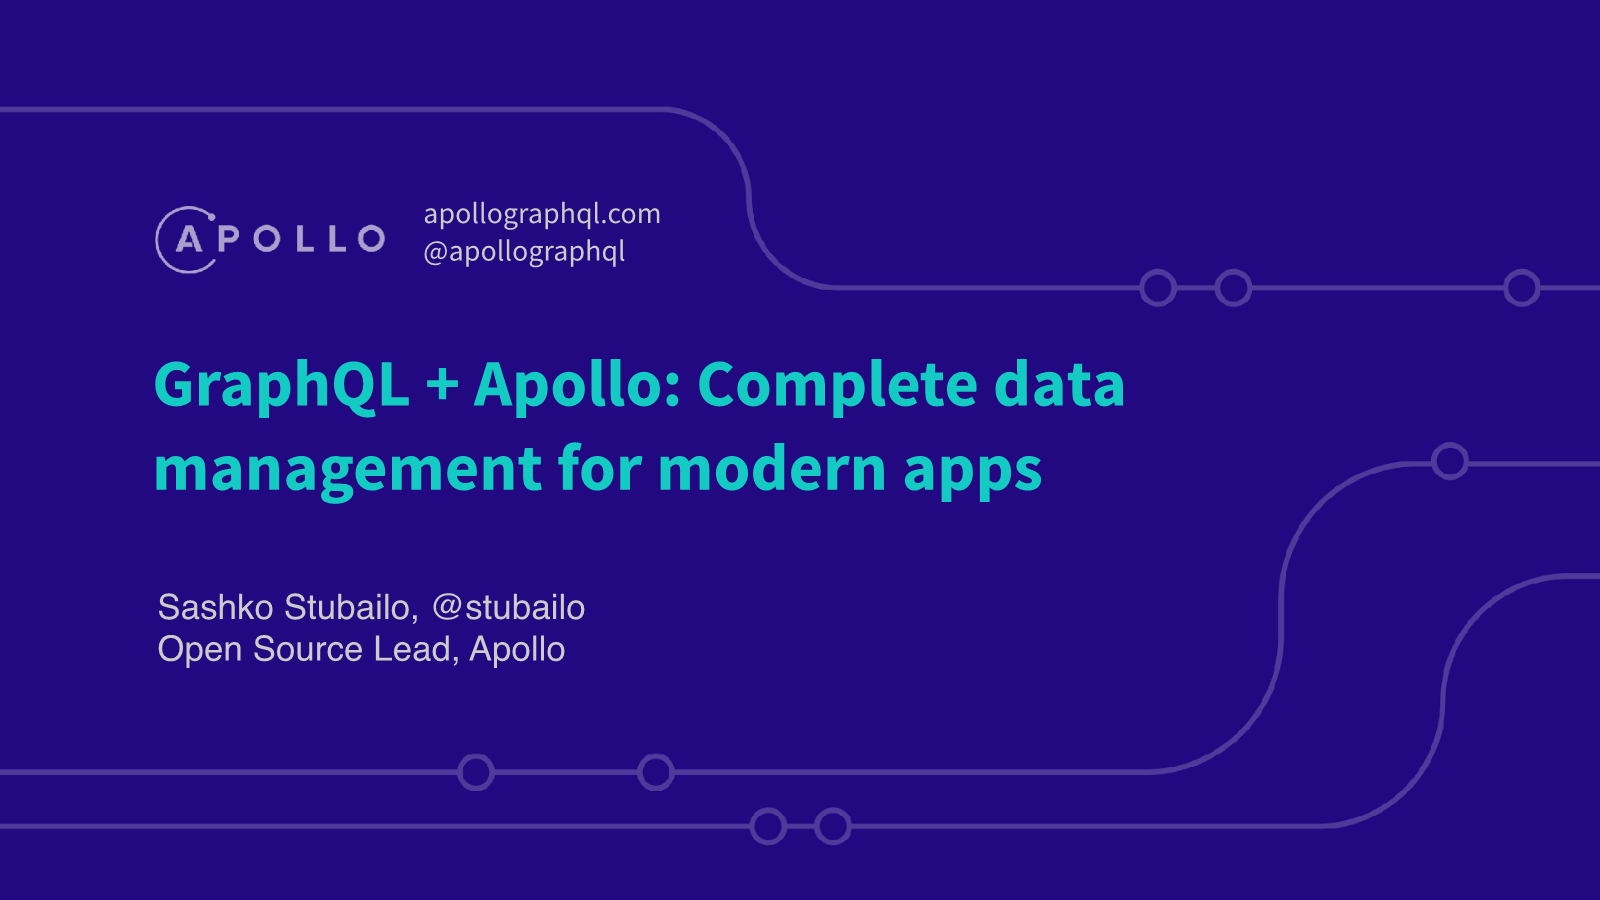 -GraphQL + Apollo Complete data management for modern apps